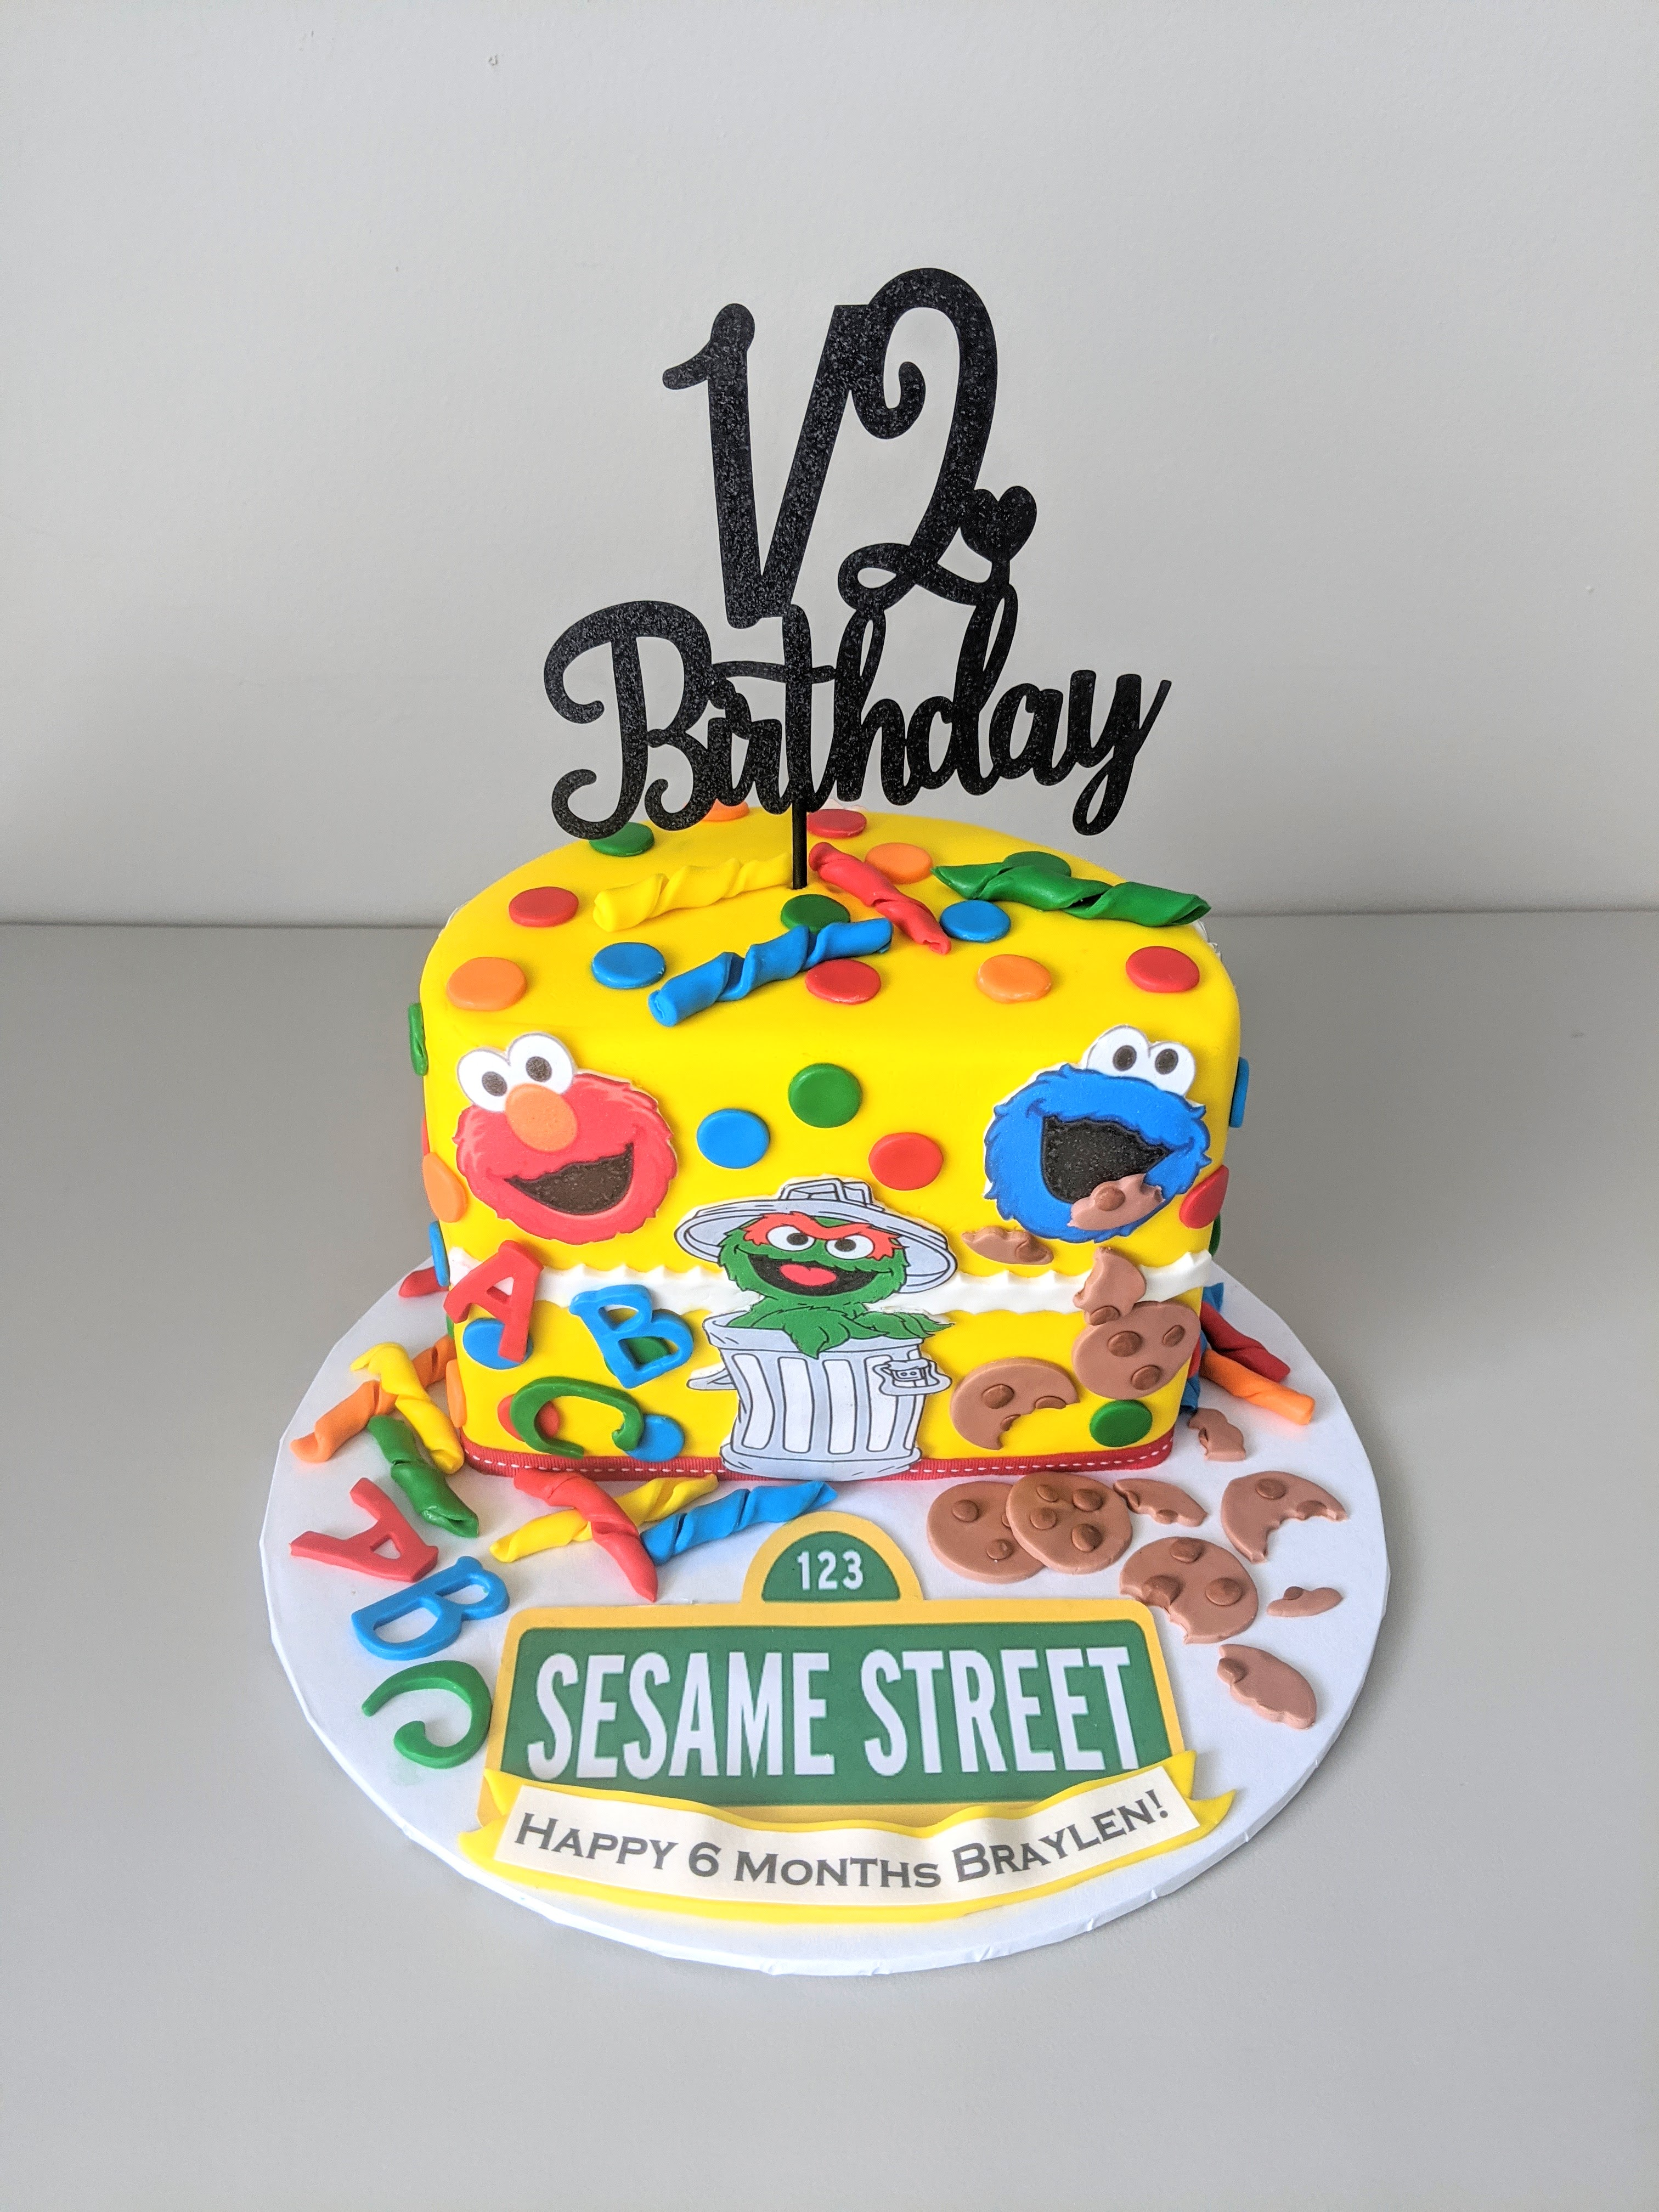 Sesame Street Half Birthday Cake